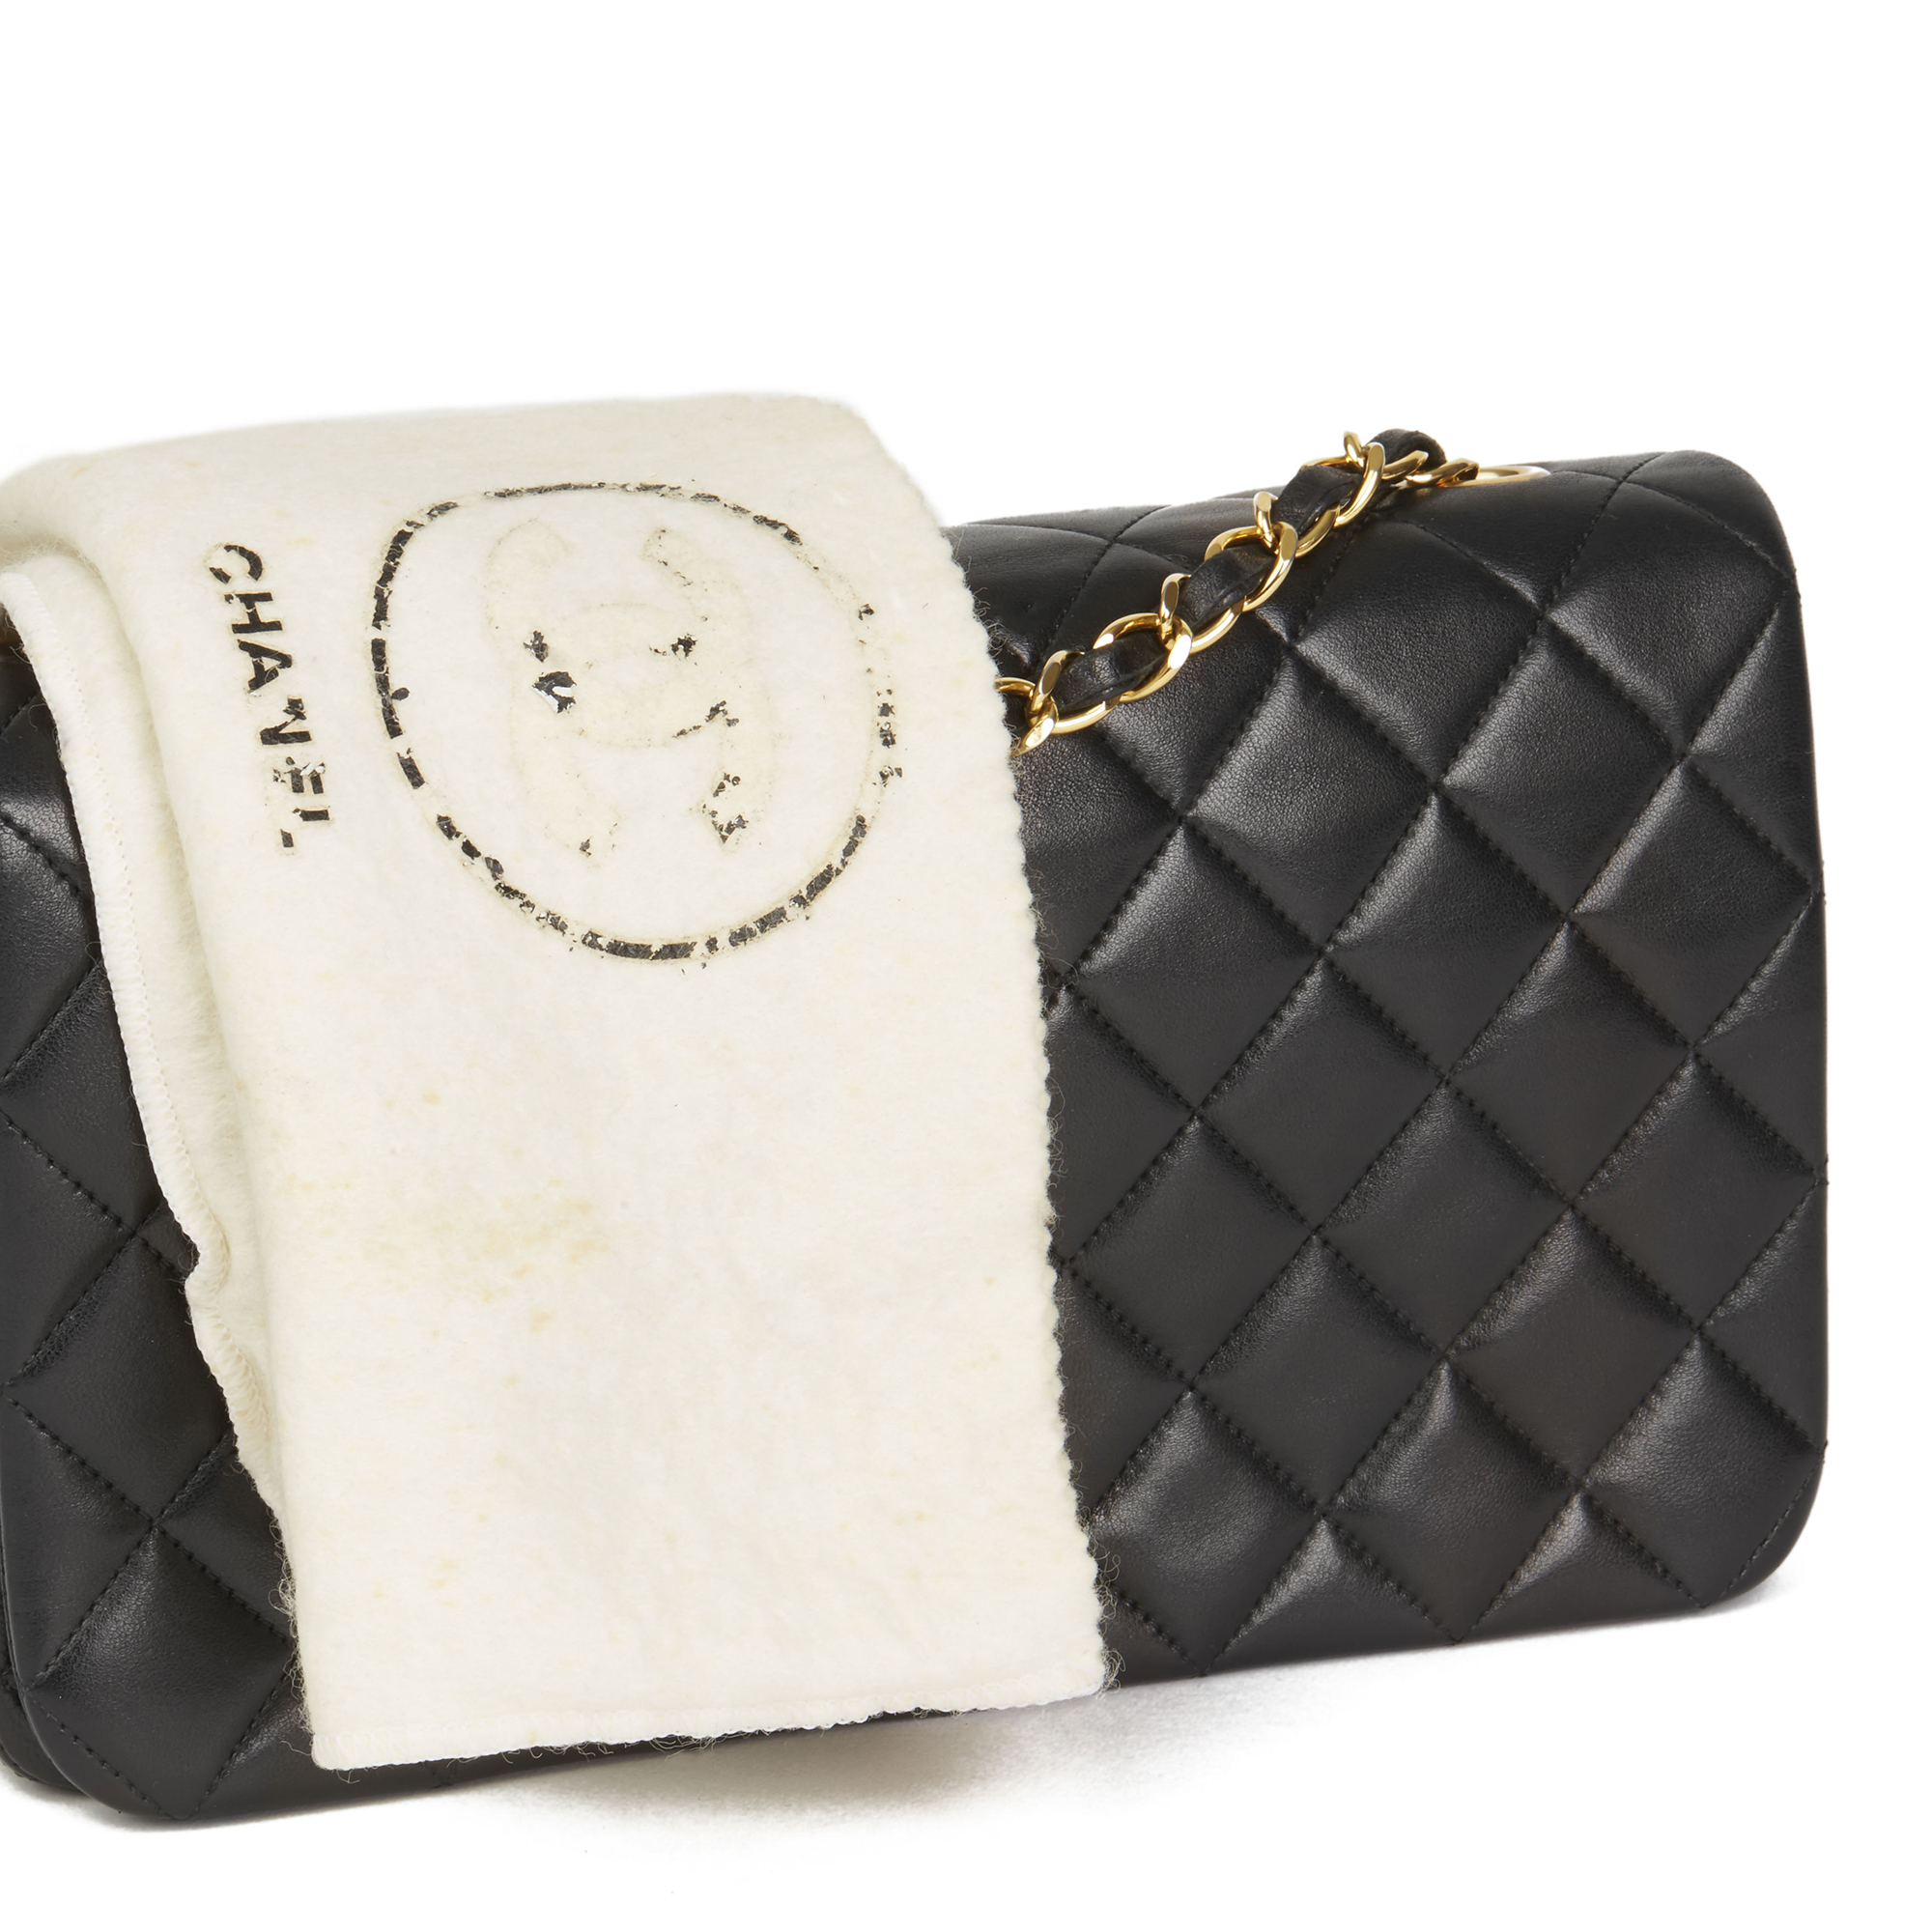 4f536dc601a3 Chanel Black Quilted Lambskin Vintage Small Classic Single Full Flap Bag